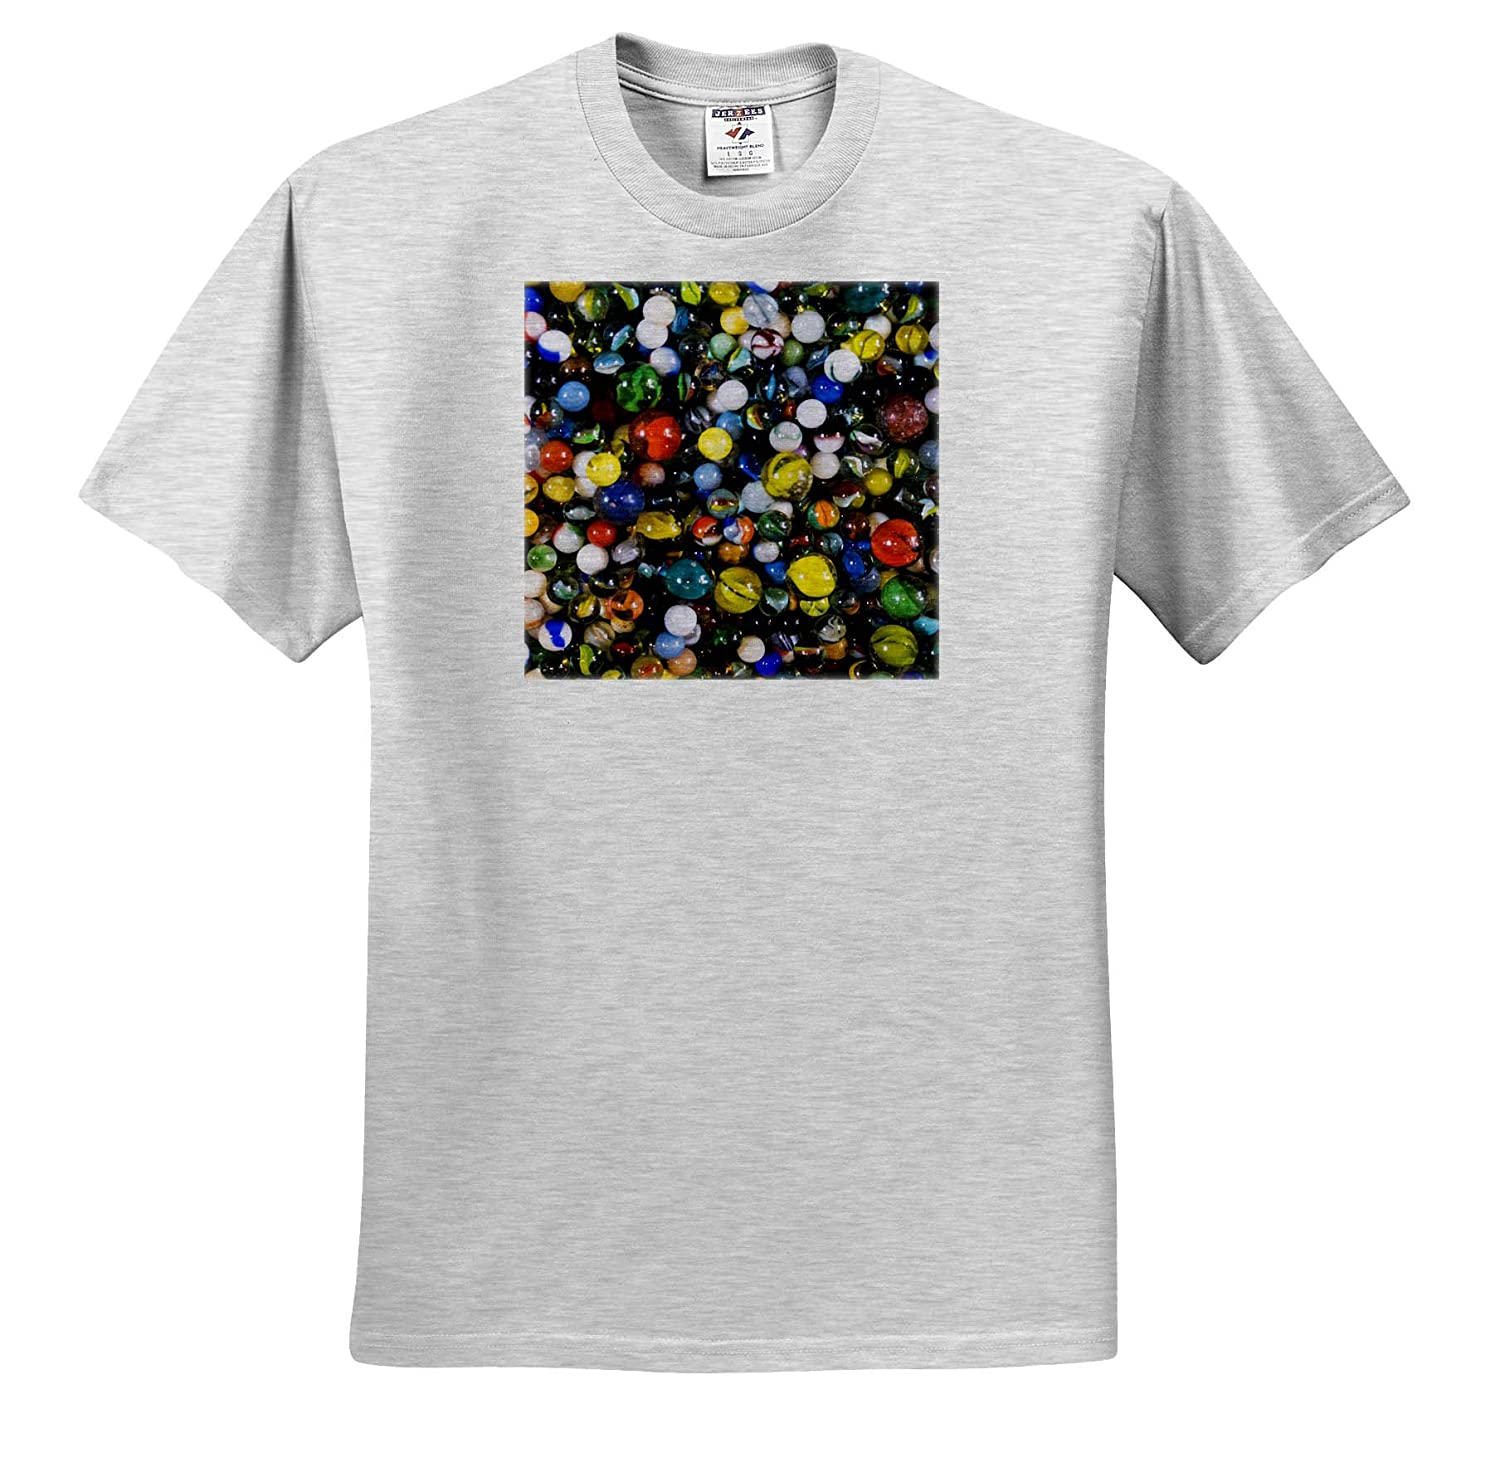 - Adult T-Shirt XL Pile of Glass Marbles Abstracts ts/_314955 3dRose Danita Delimont